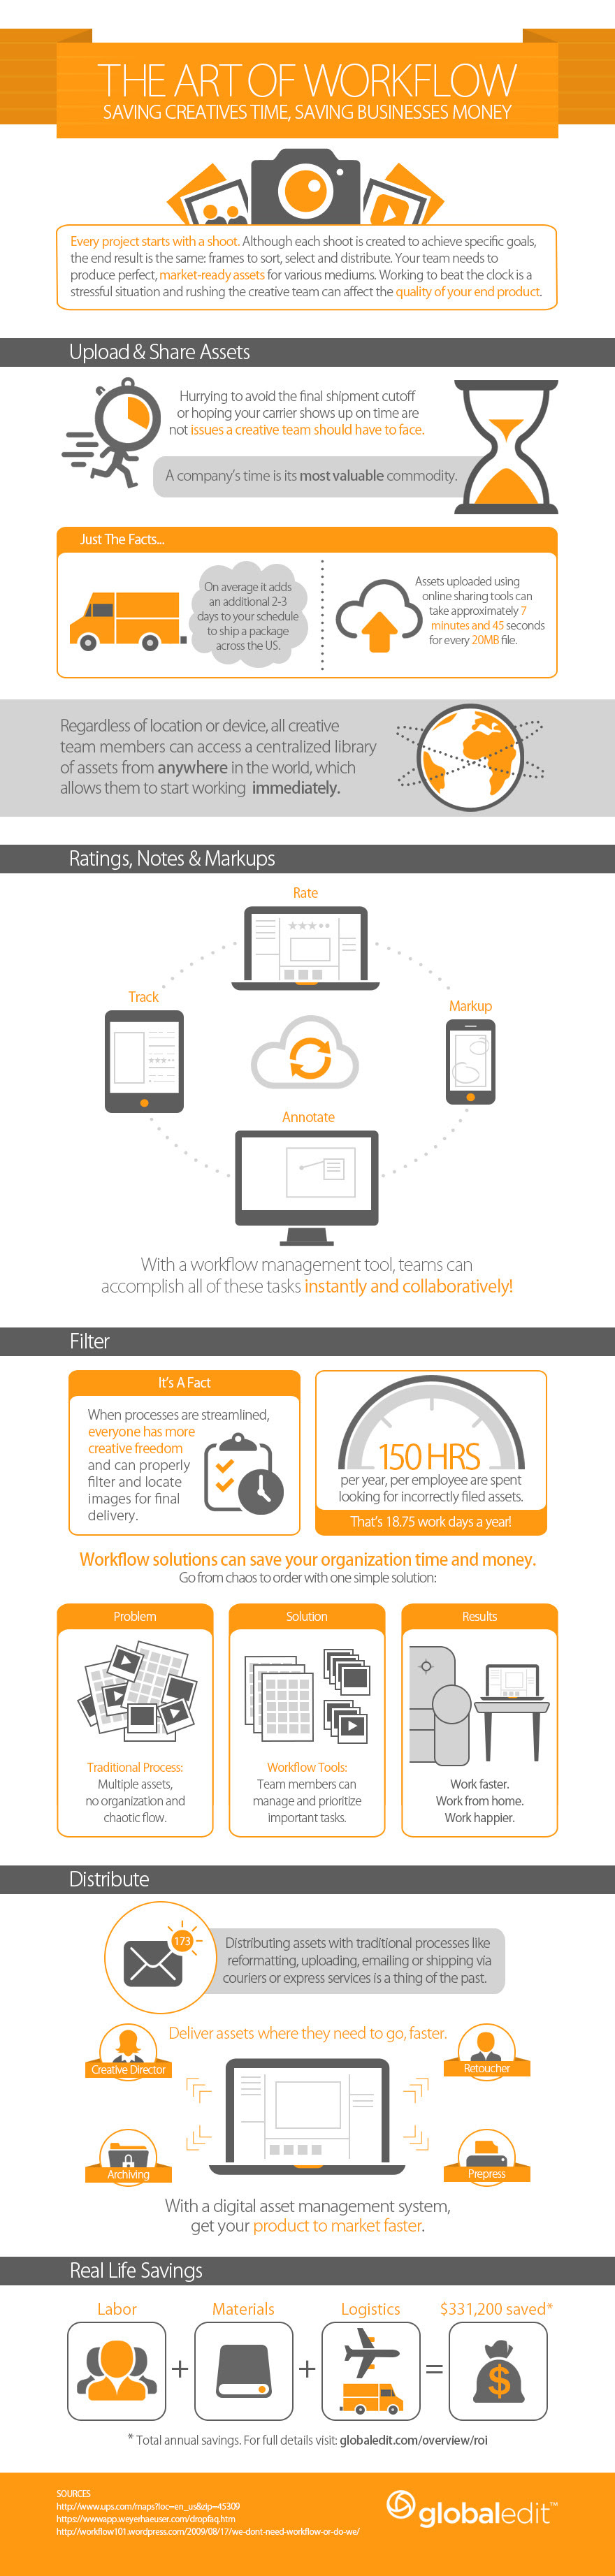 Infographic: The Art of Workflow #infographic